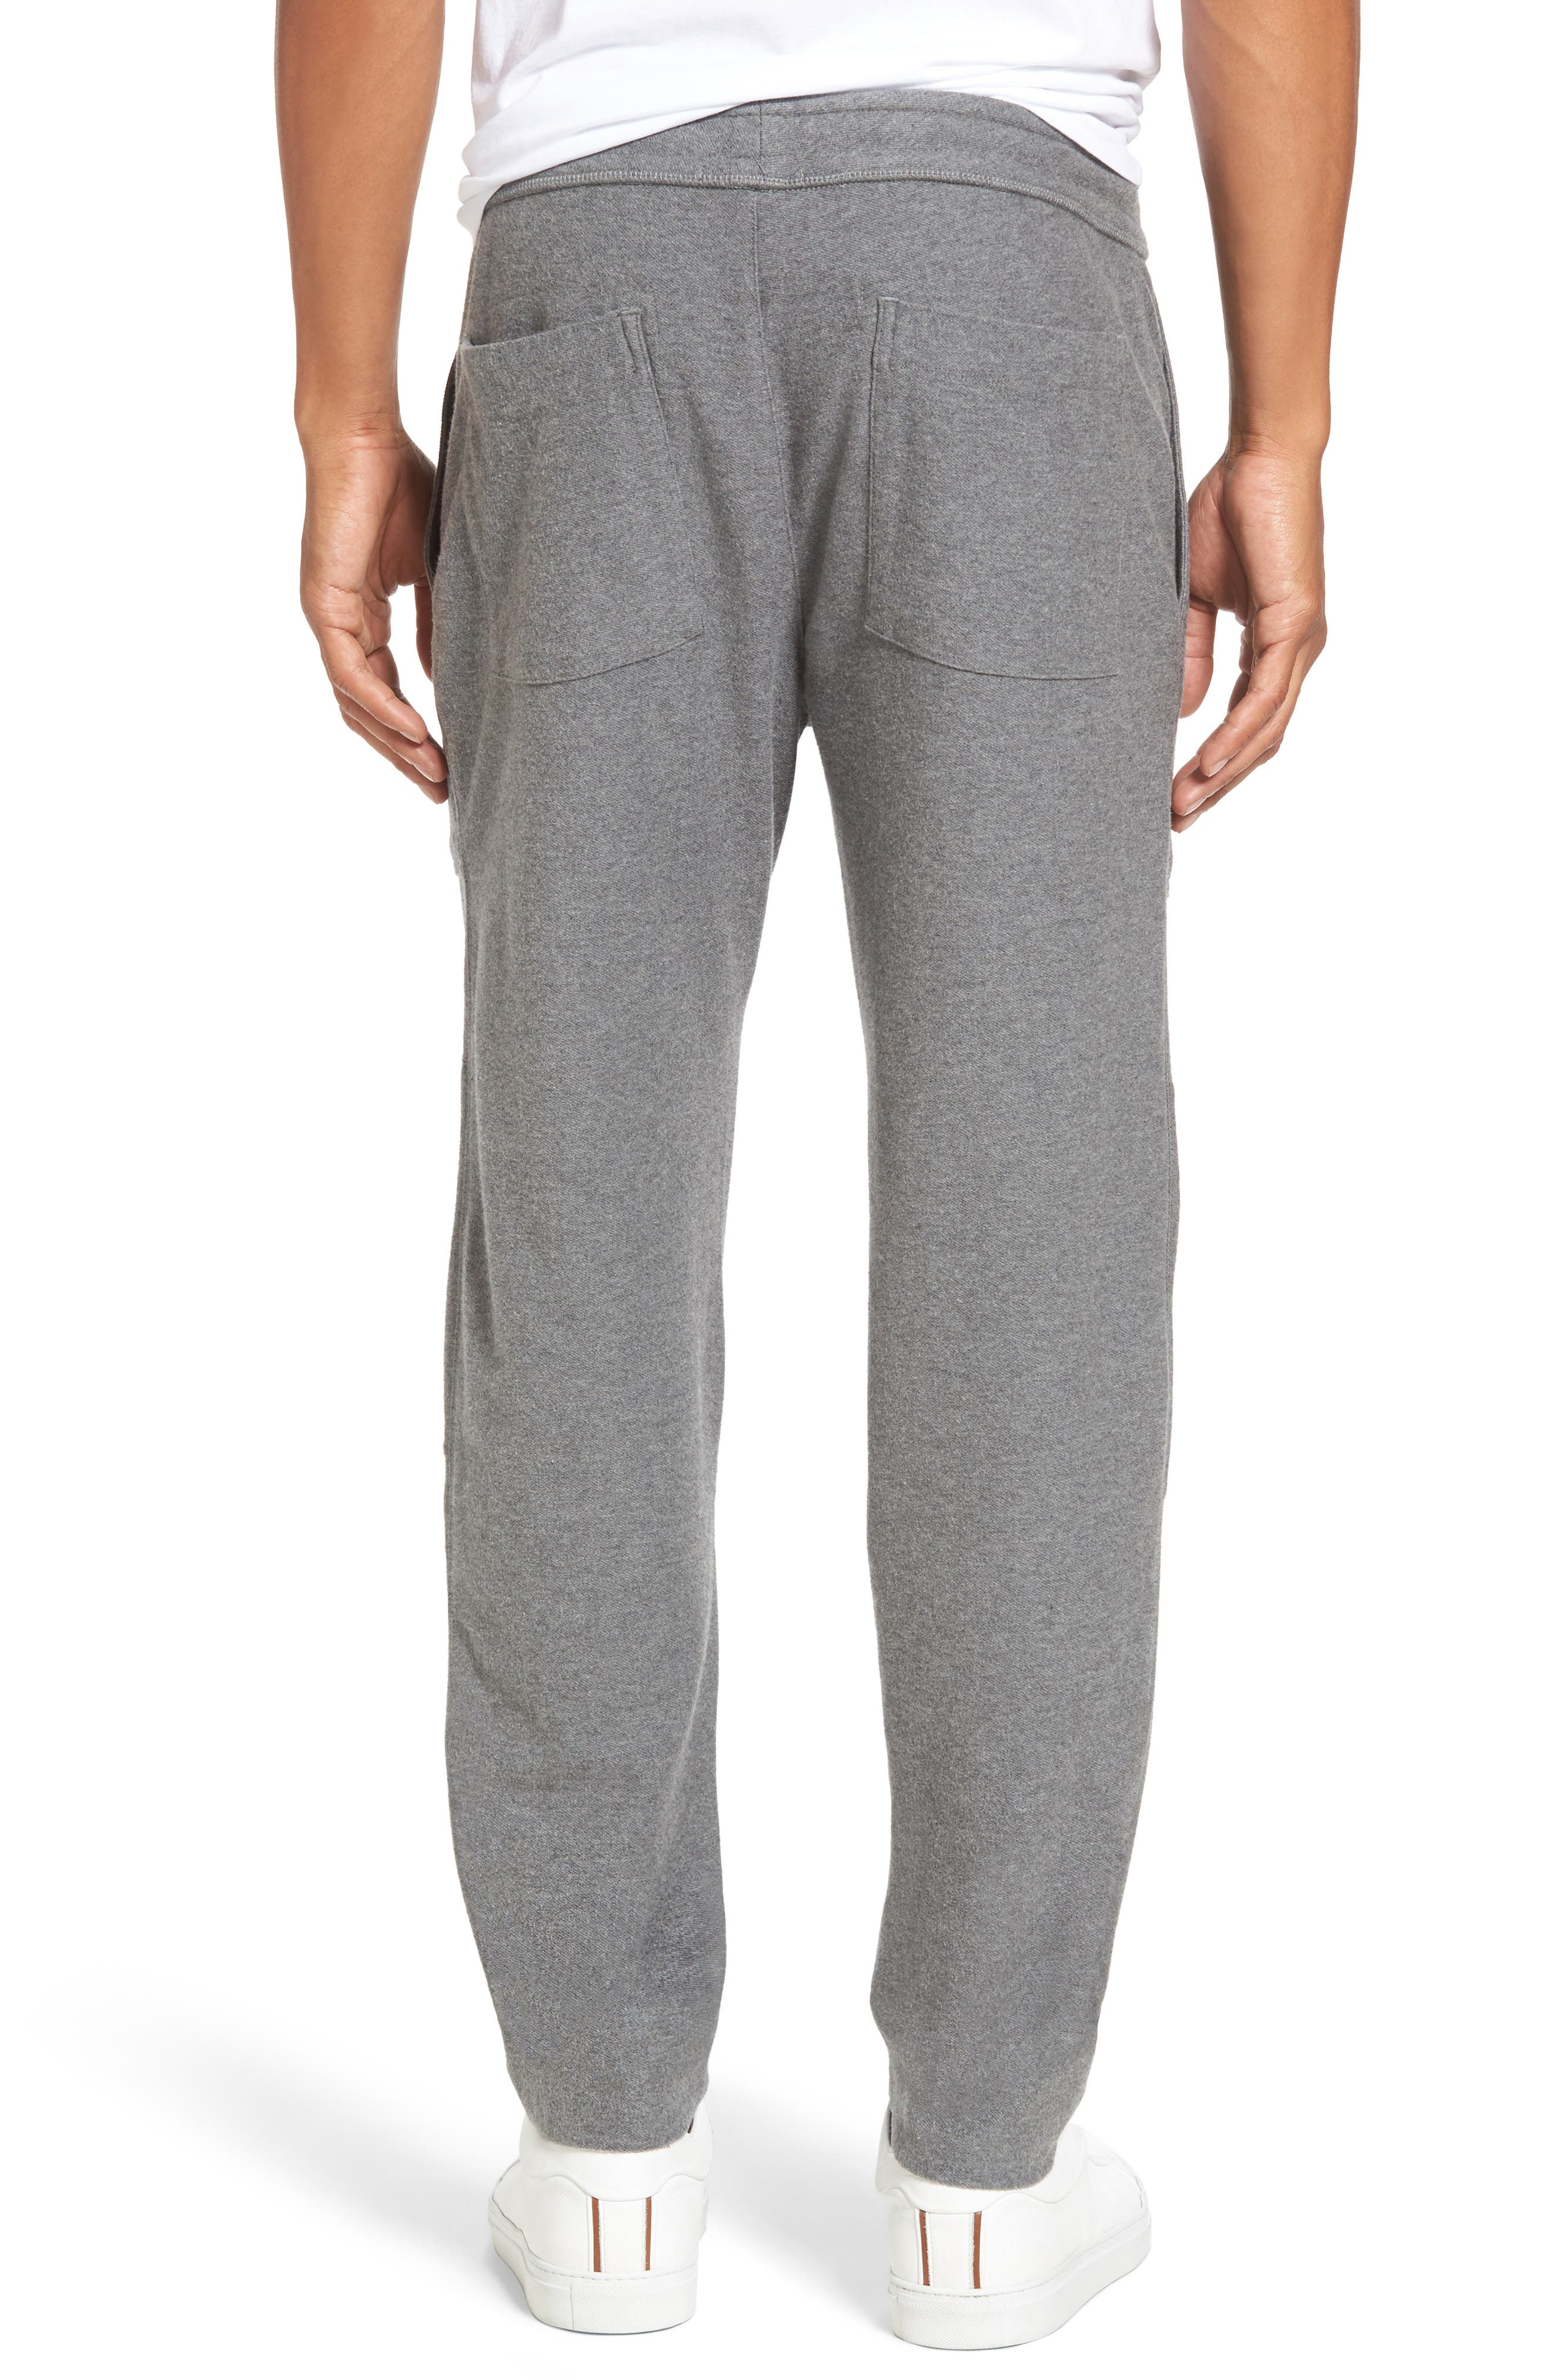 Heathered Knit Lounge Pants,                             Alternate thumbnail 2, color,                             Heather Grey